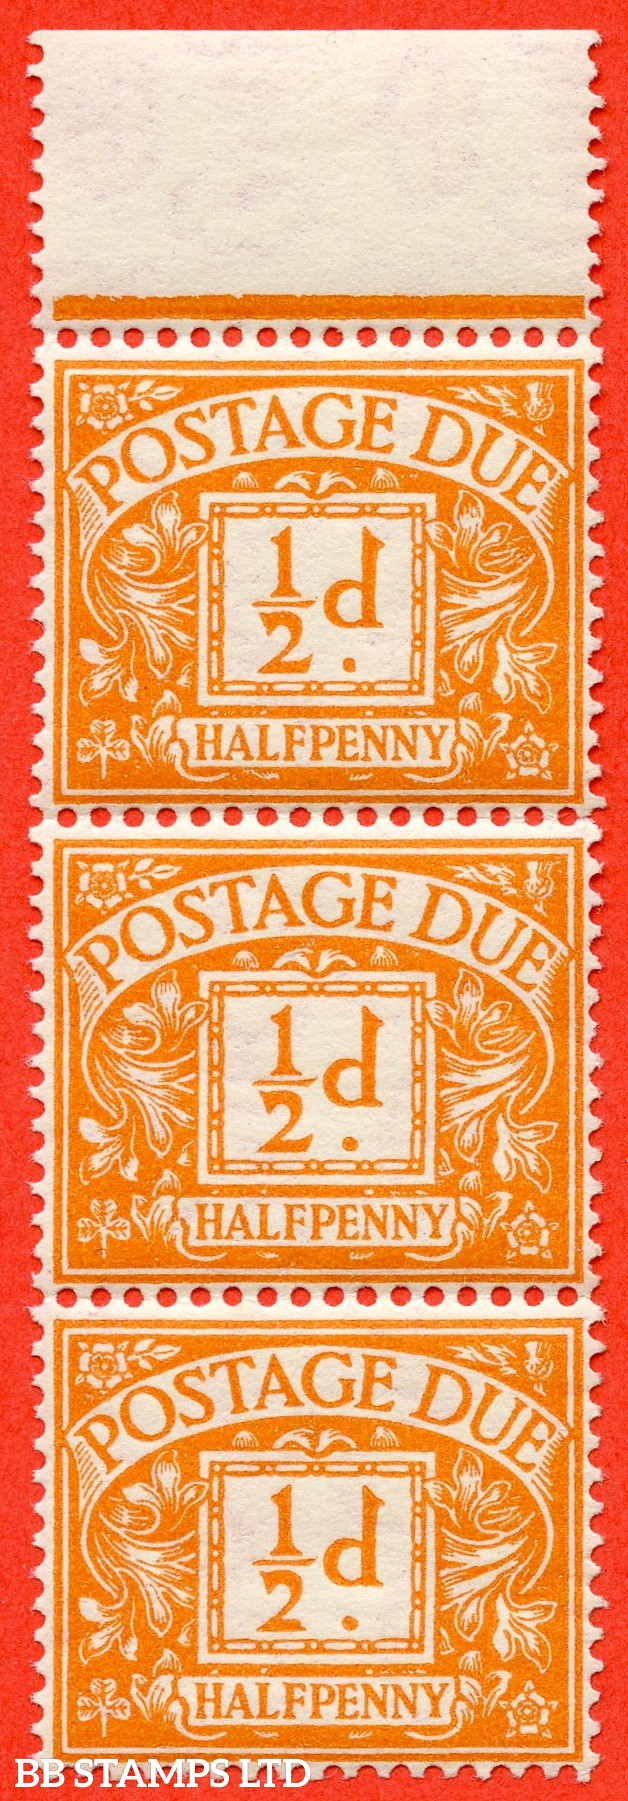 """SG. D35. R35 (1) a. ½d Orange. A super UNMOUNTED MINT top marginal vertical strip of 3 with the listed """" Broken ' 2 ' in ' ½ '. Row 3 /14 """" variety. A fine positional piece."""